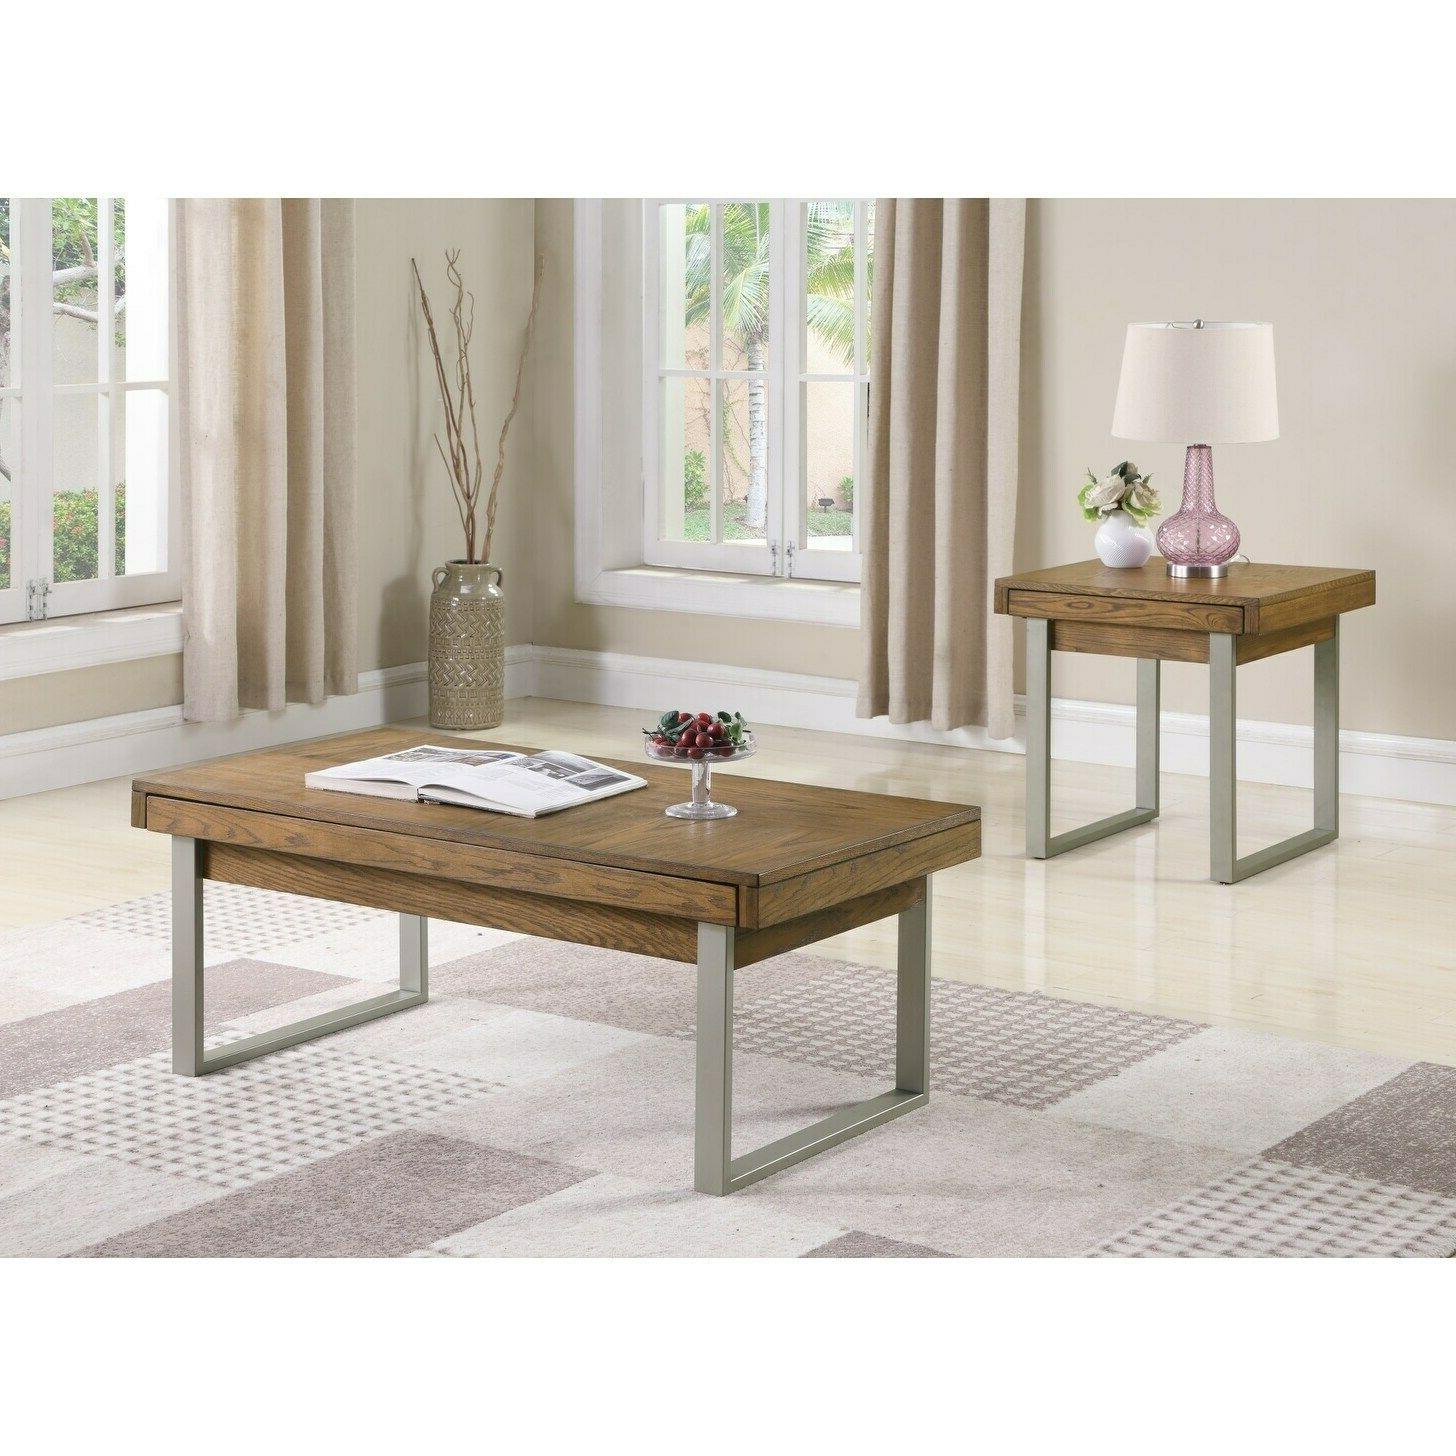 Most Up To Date Strick & Bolton Florence Chrome Coffee Tables Within Strick & Bolton Kramer Golden Oak Coffee Table Brown (View 20 of 20)